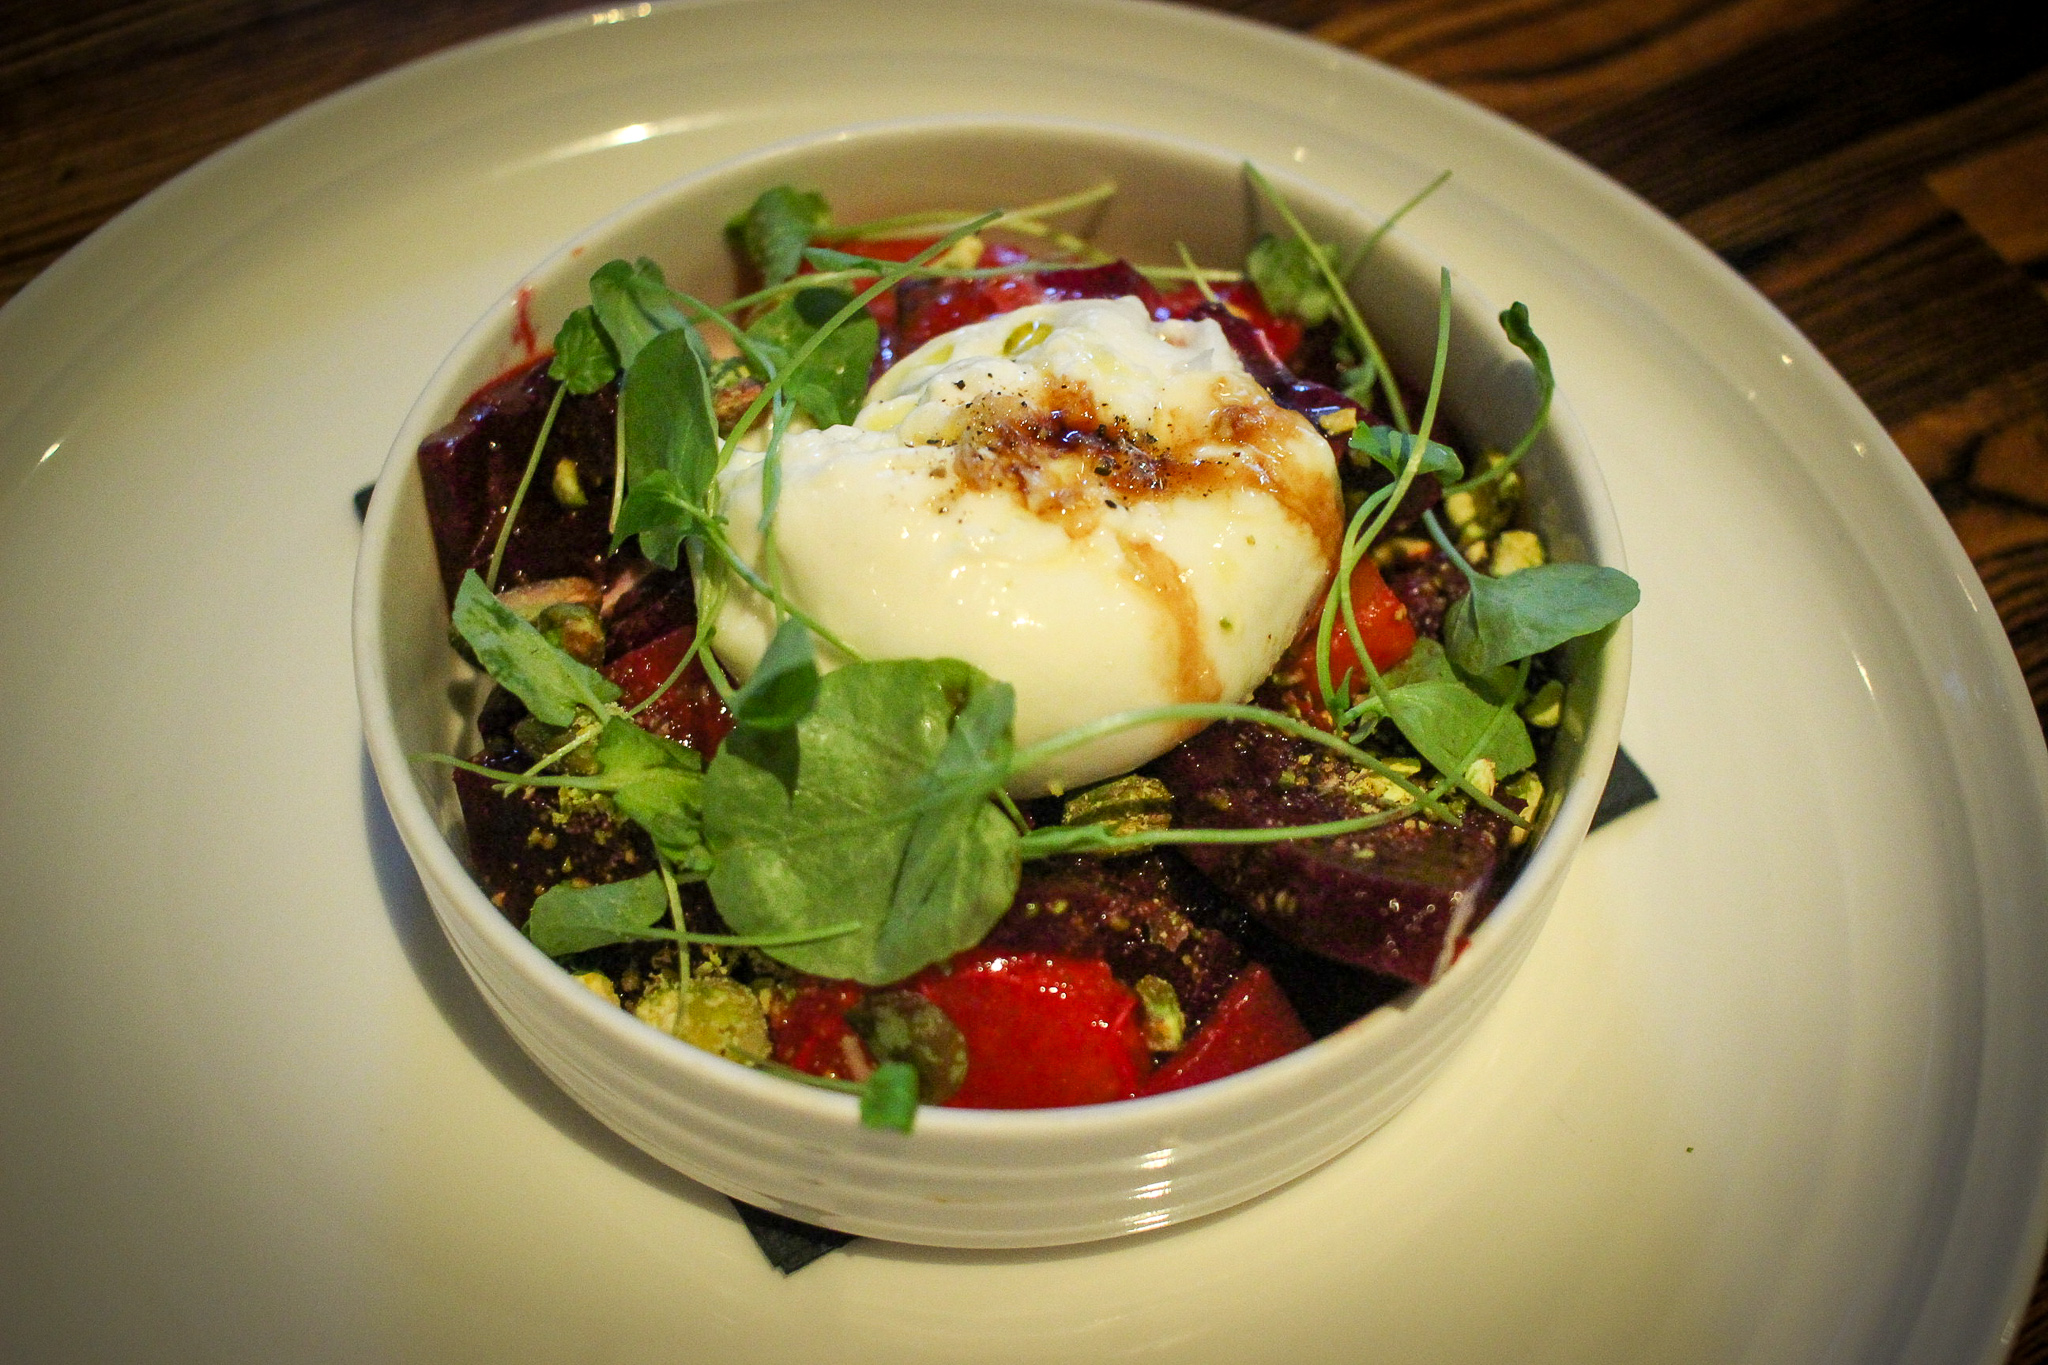 Smoked burrata with beets, citrus, pistachios, and Calabrian chilies